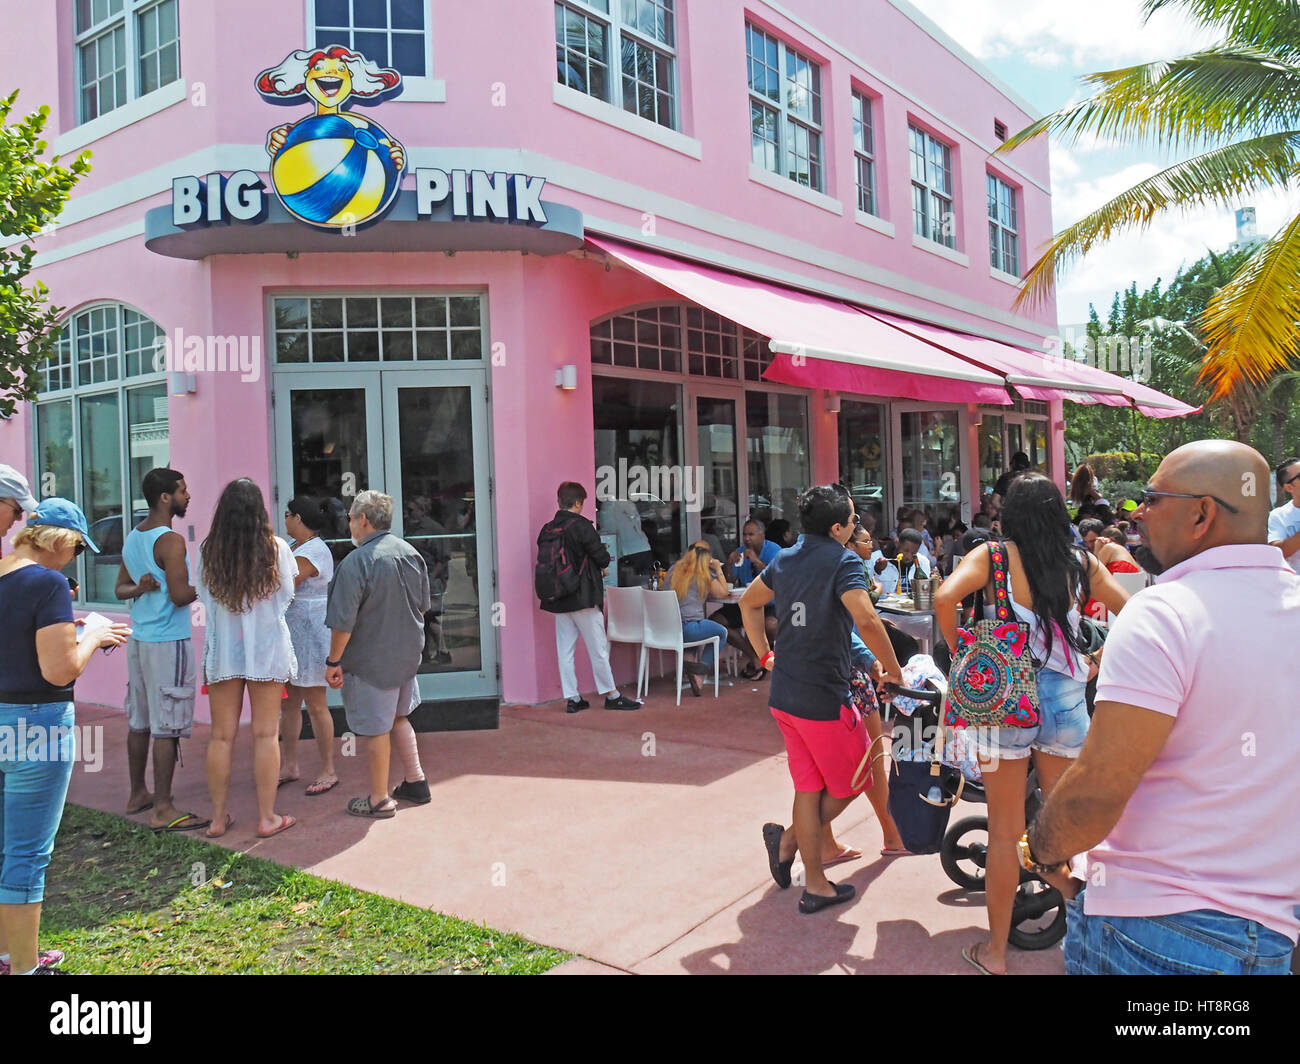 Customers waiting for tables at popular Big Pink restaurant in Miami's South Beach. - Stock Image